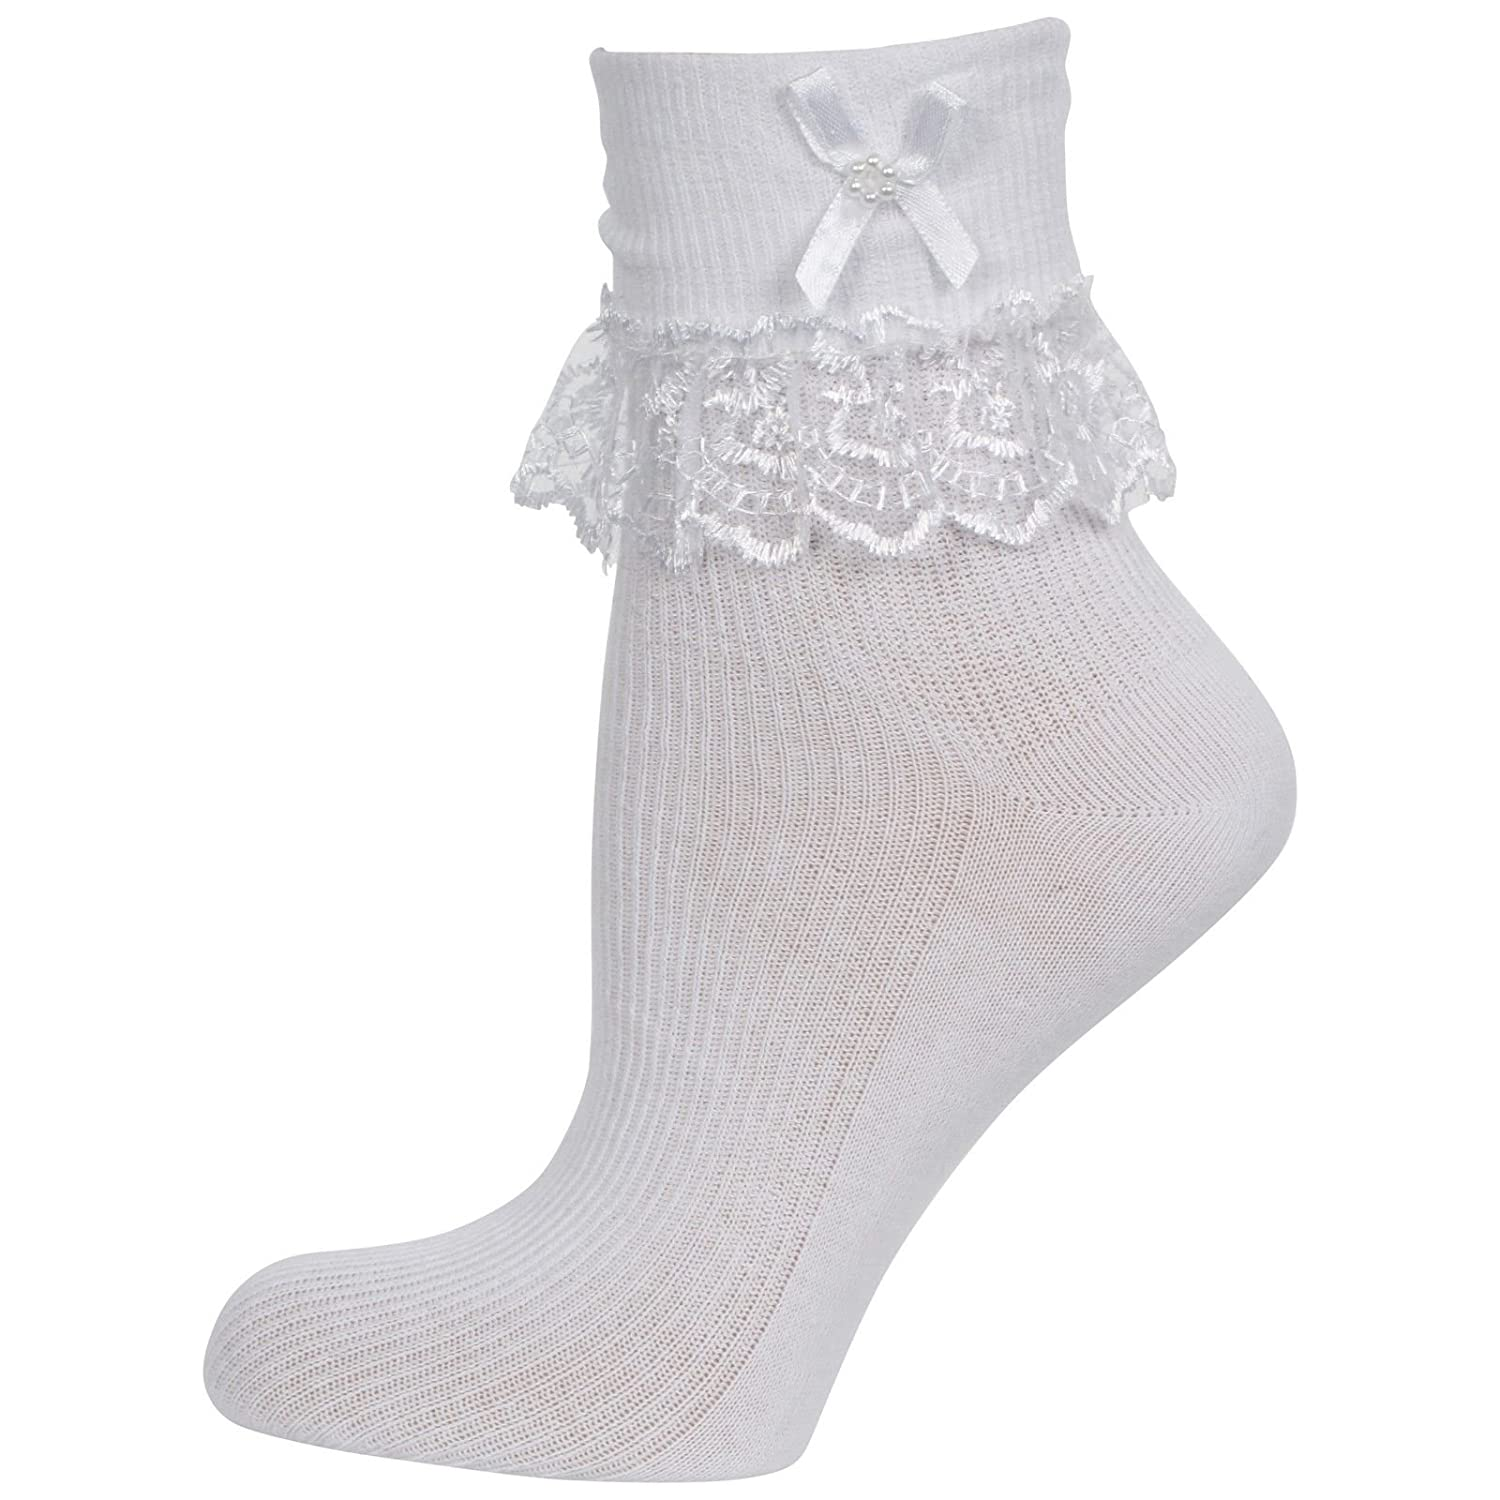 10/% with TWO more purchase Newborn to 10 years old Cute Decorative Baby Girl White Cream//Ivory Frilly Lace Socks